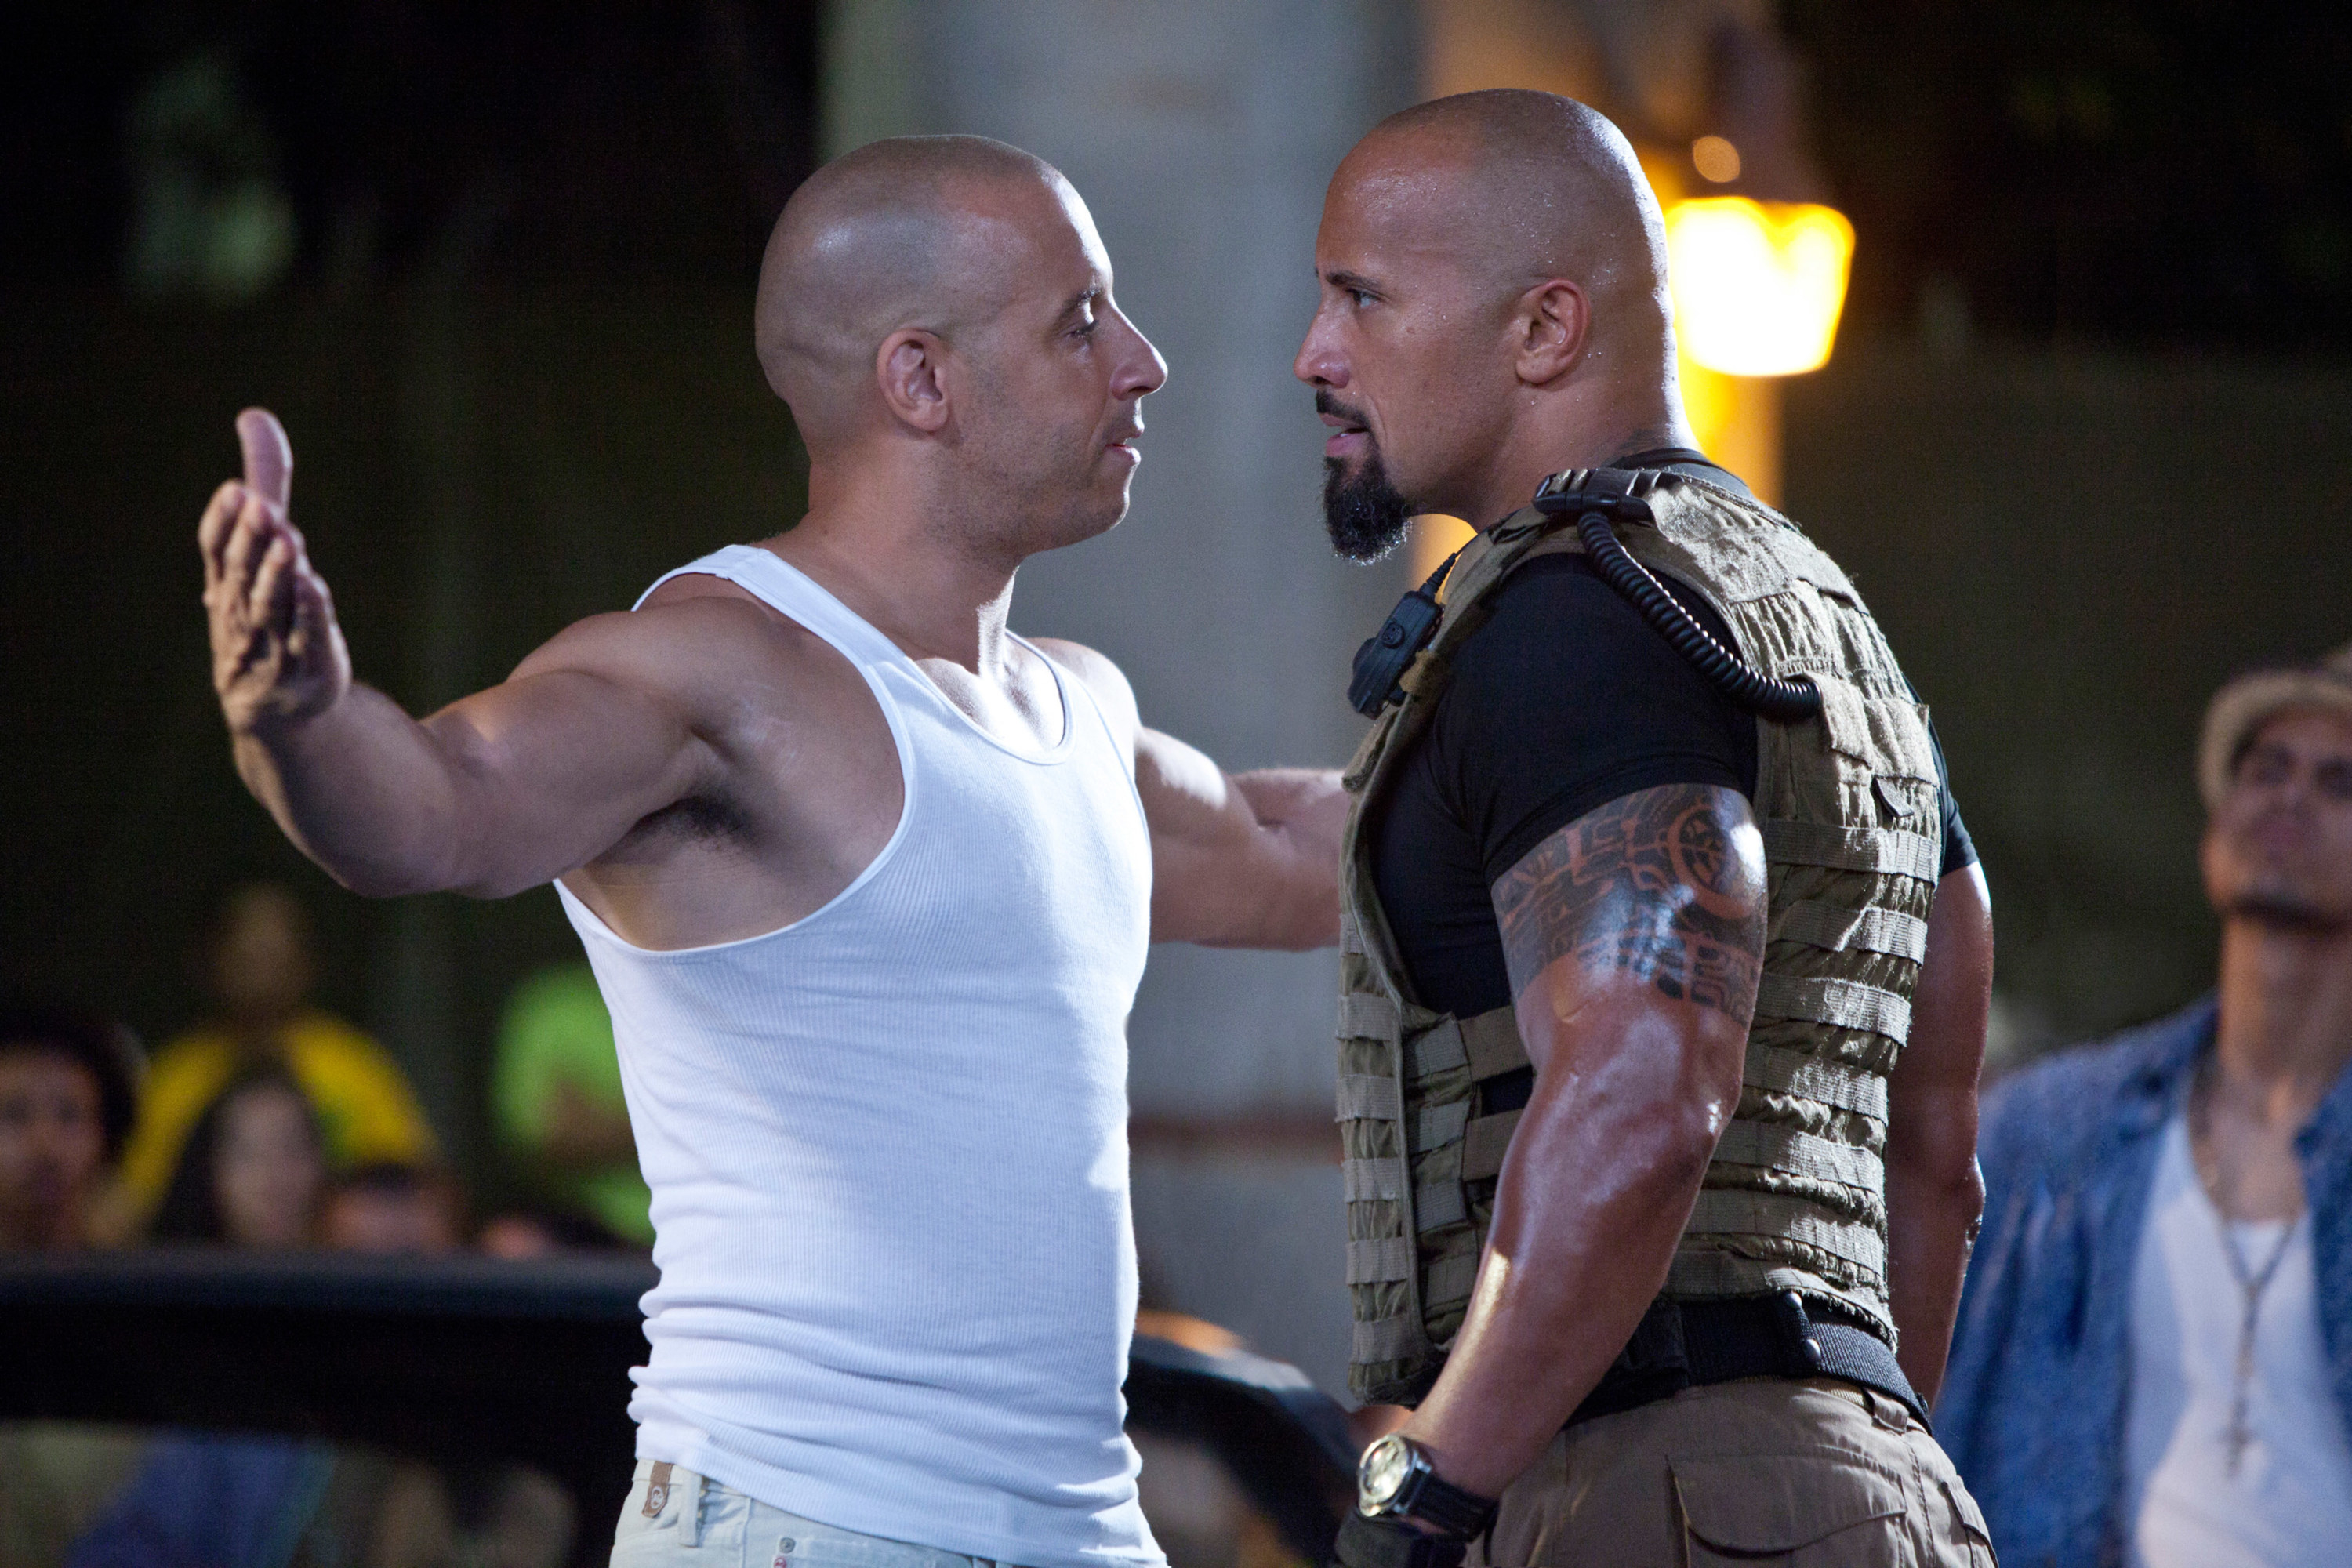 Dwayne and Vin go face to face in the movie.